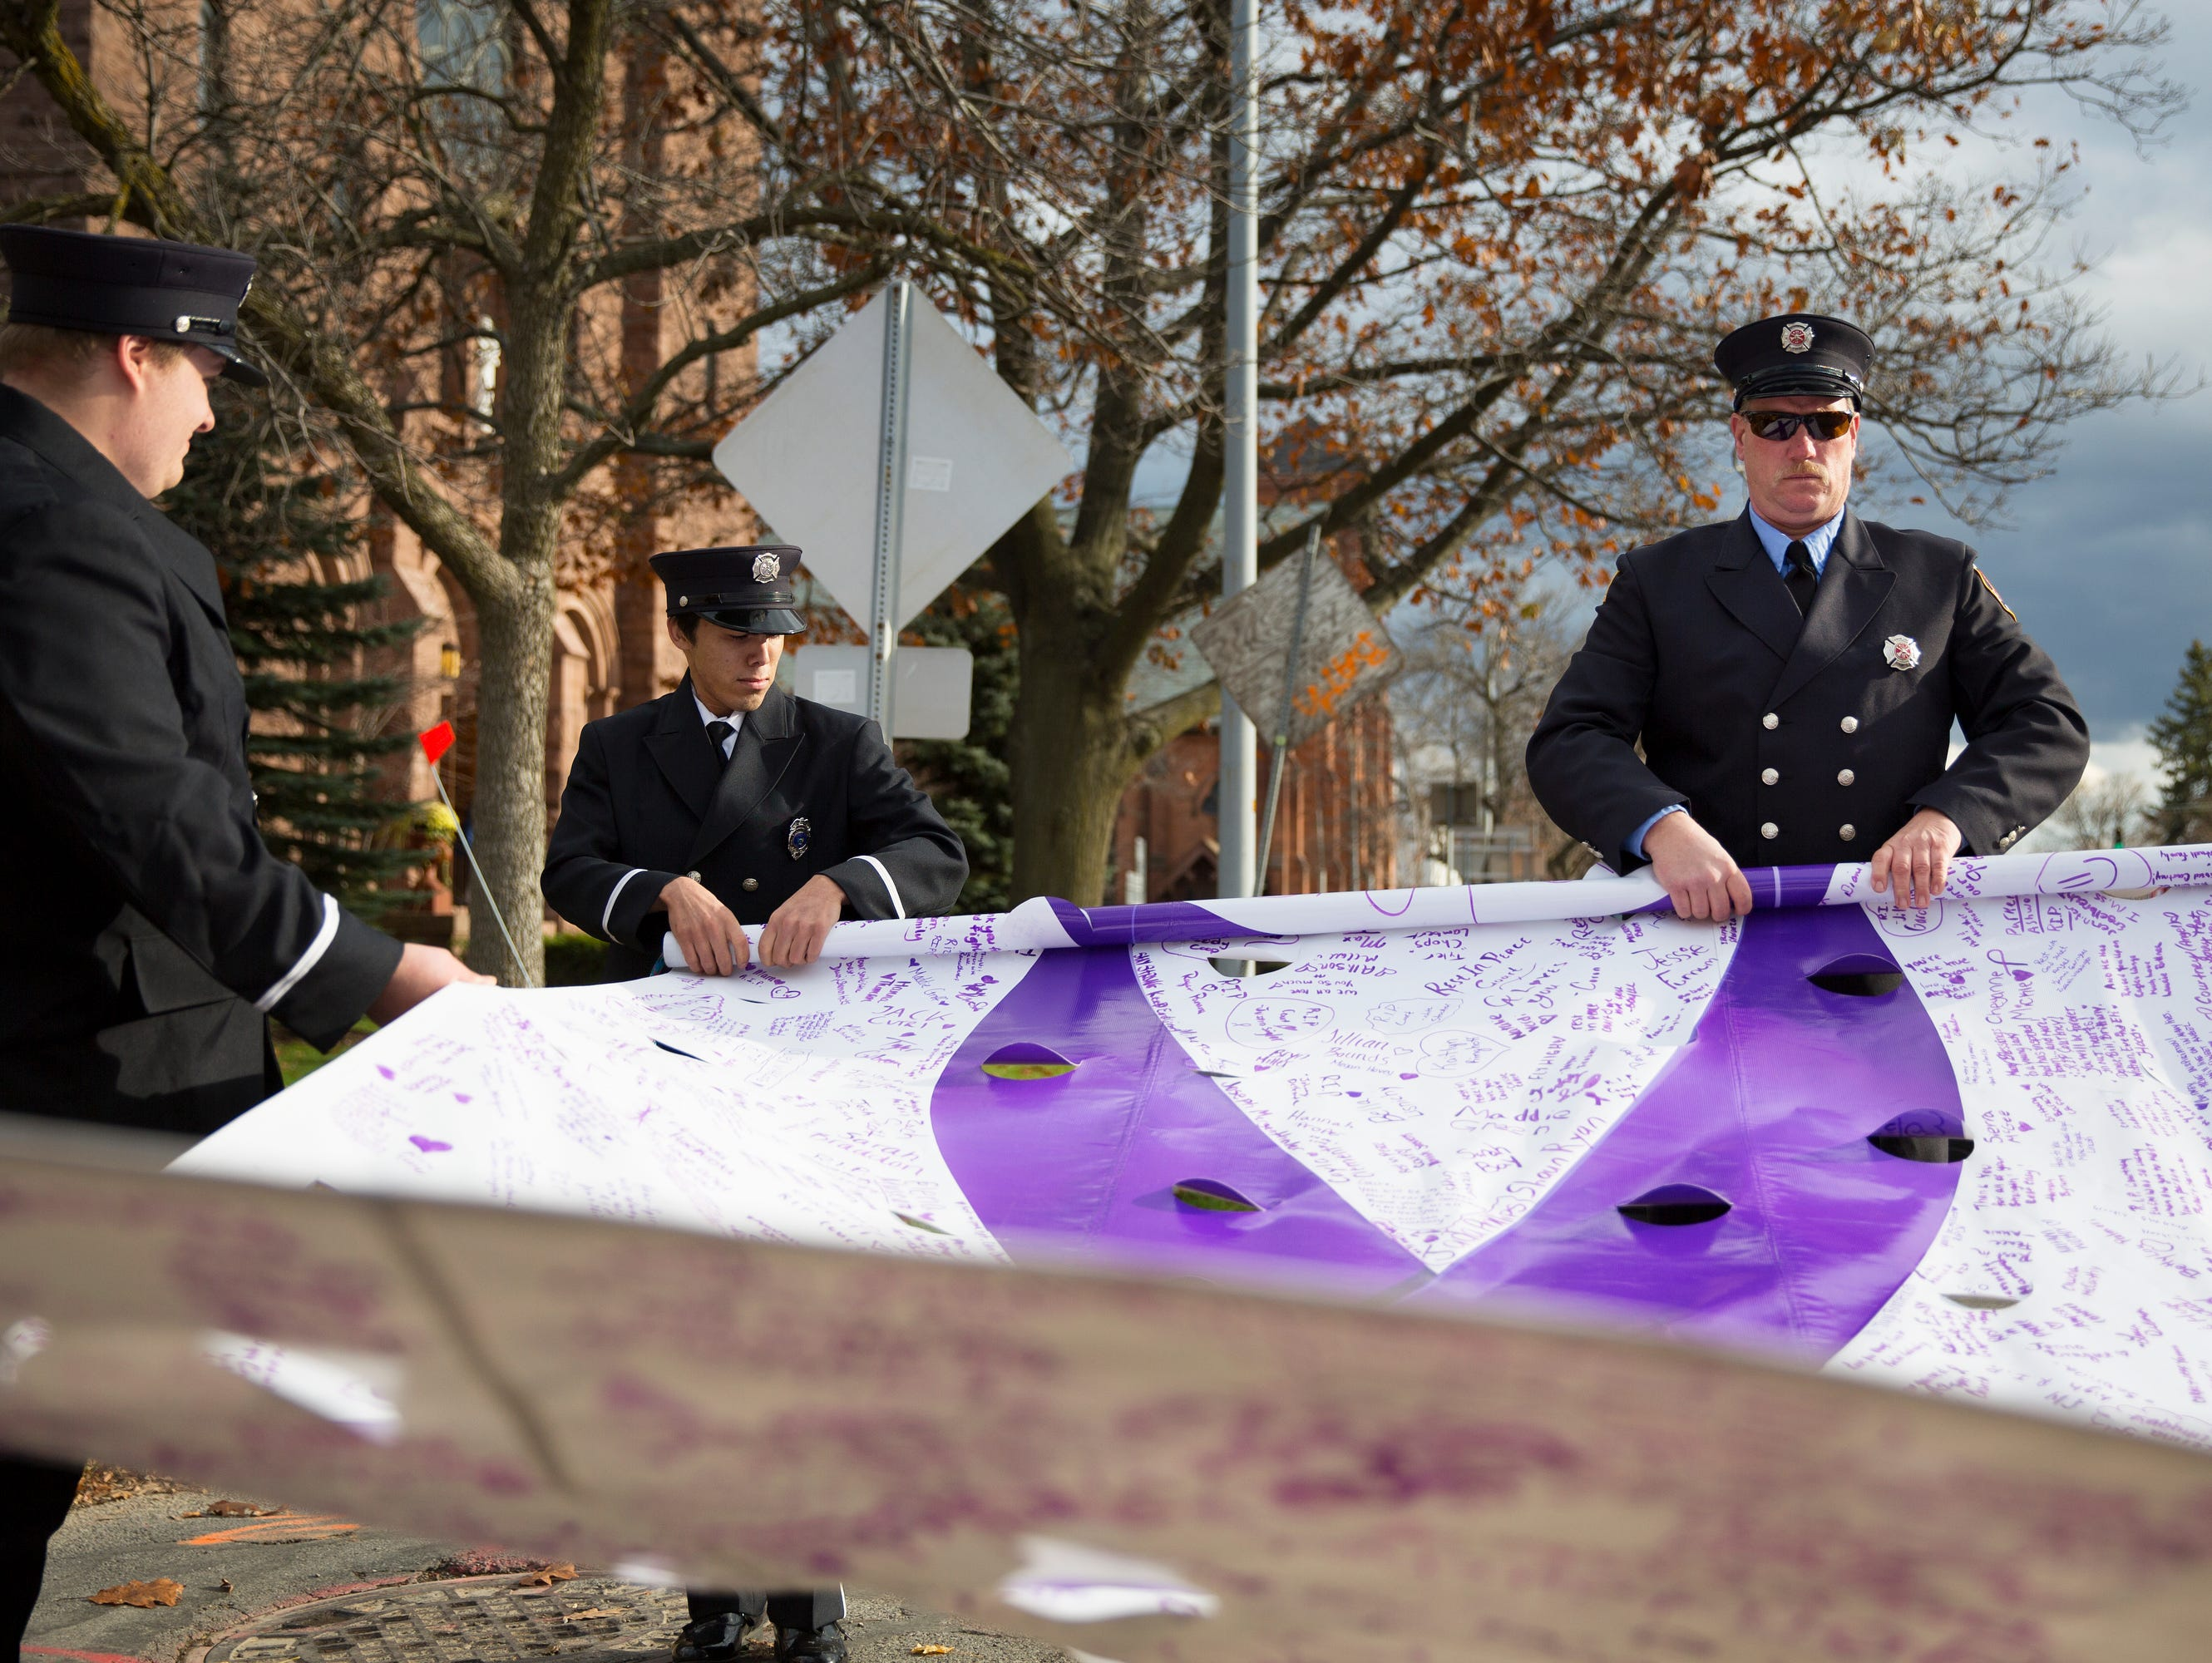 Farmington firefighter Tyler Whitcomb and Canandaigua firefighter Rich Bartell roll up a banner for Courtney Wagner following her funeral in Canandaigua on Saturday, November 7, 2015.